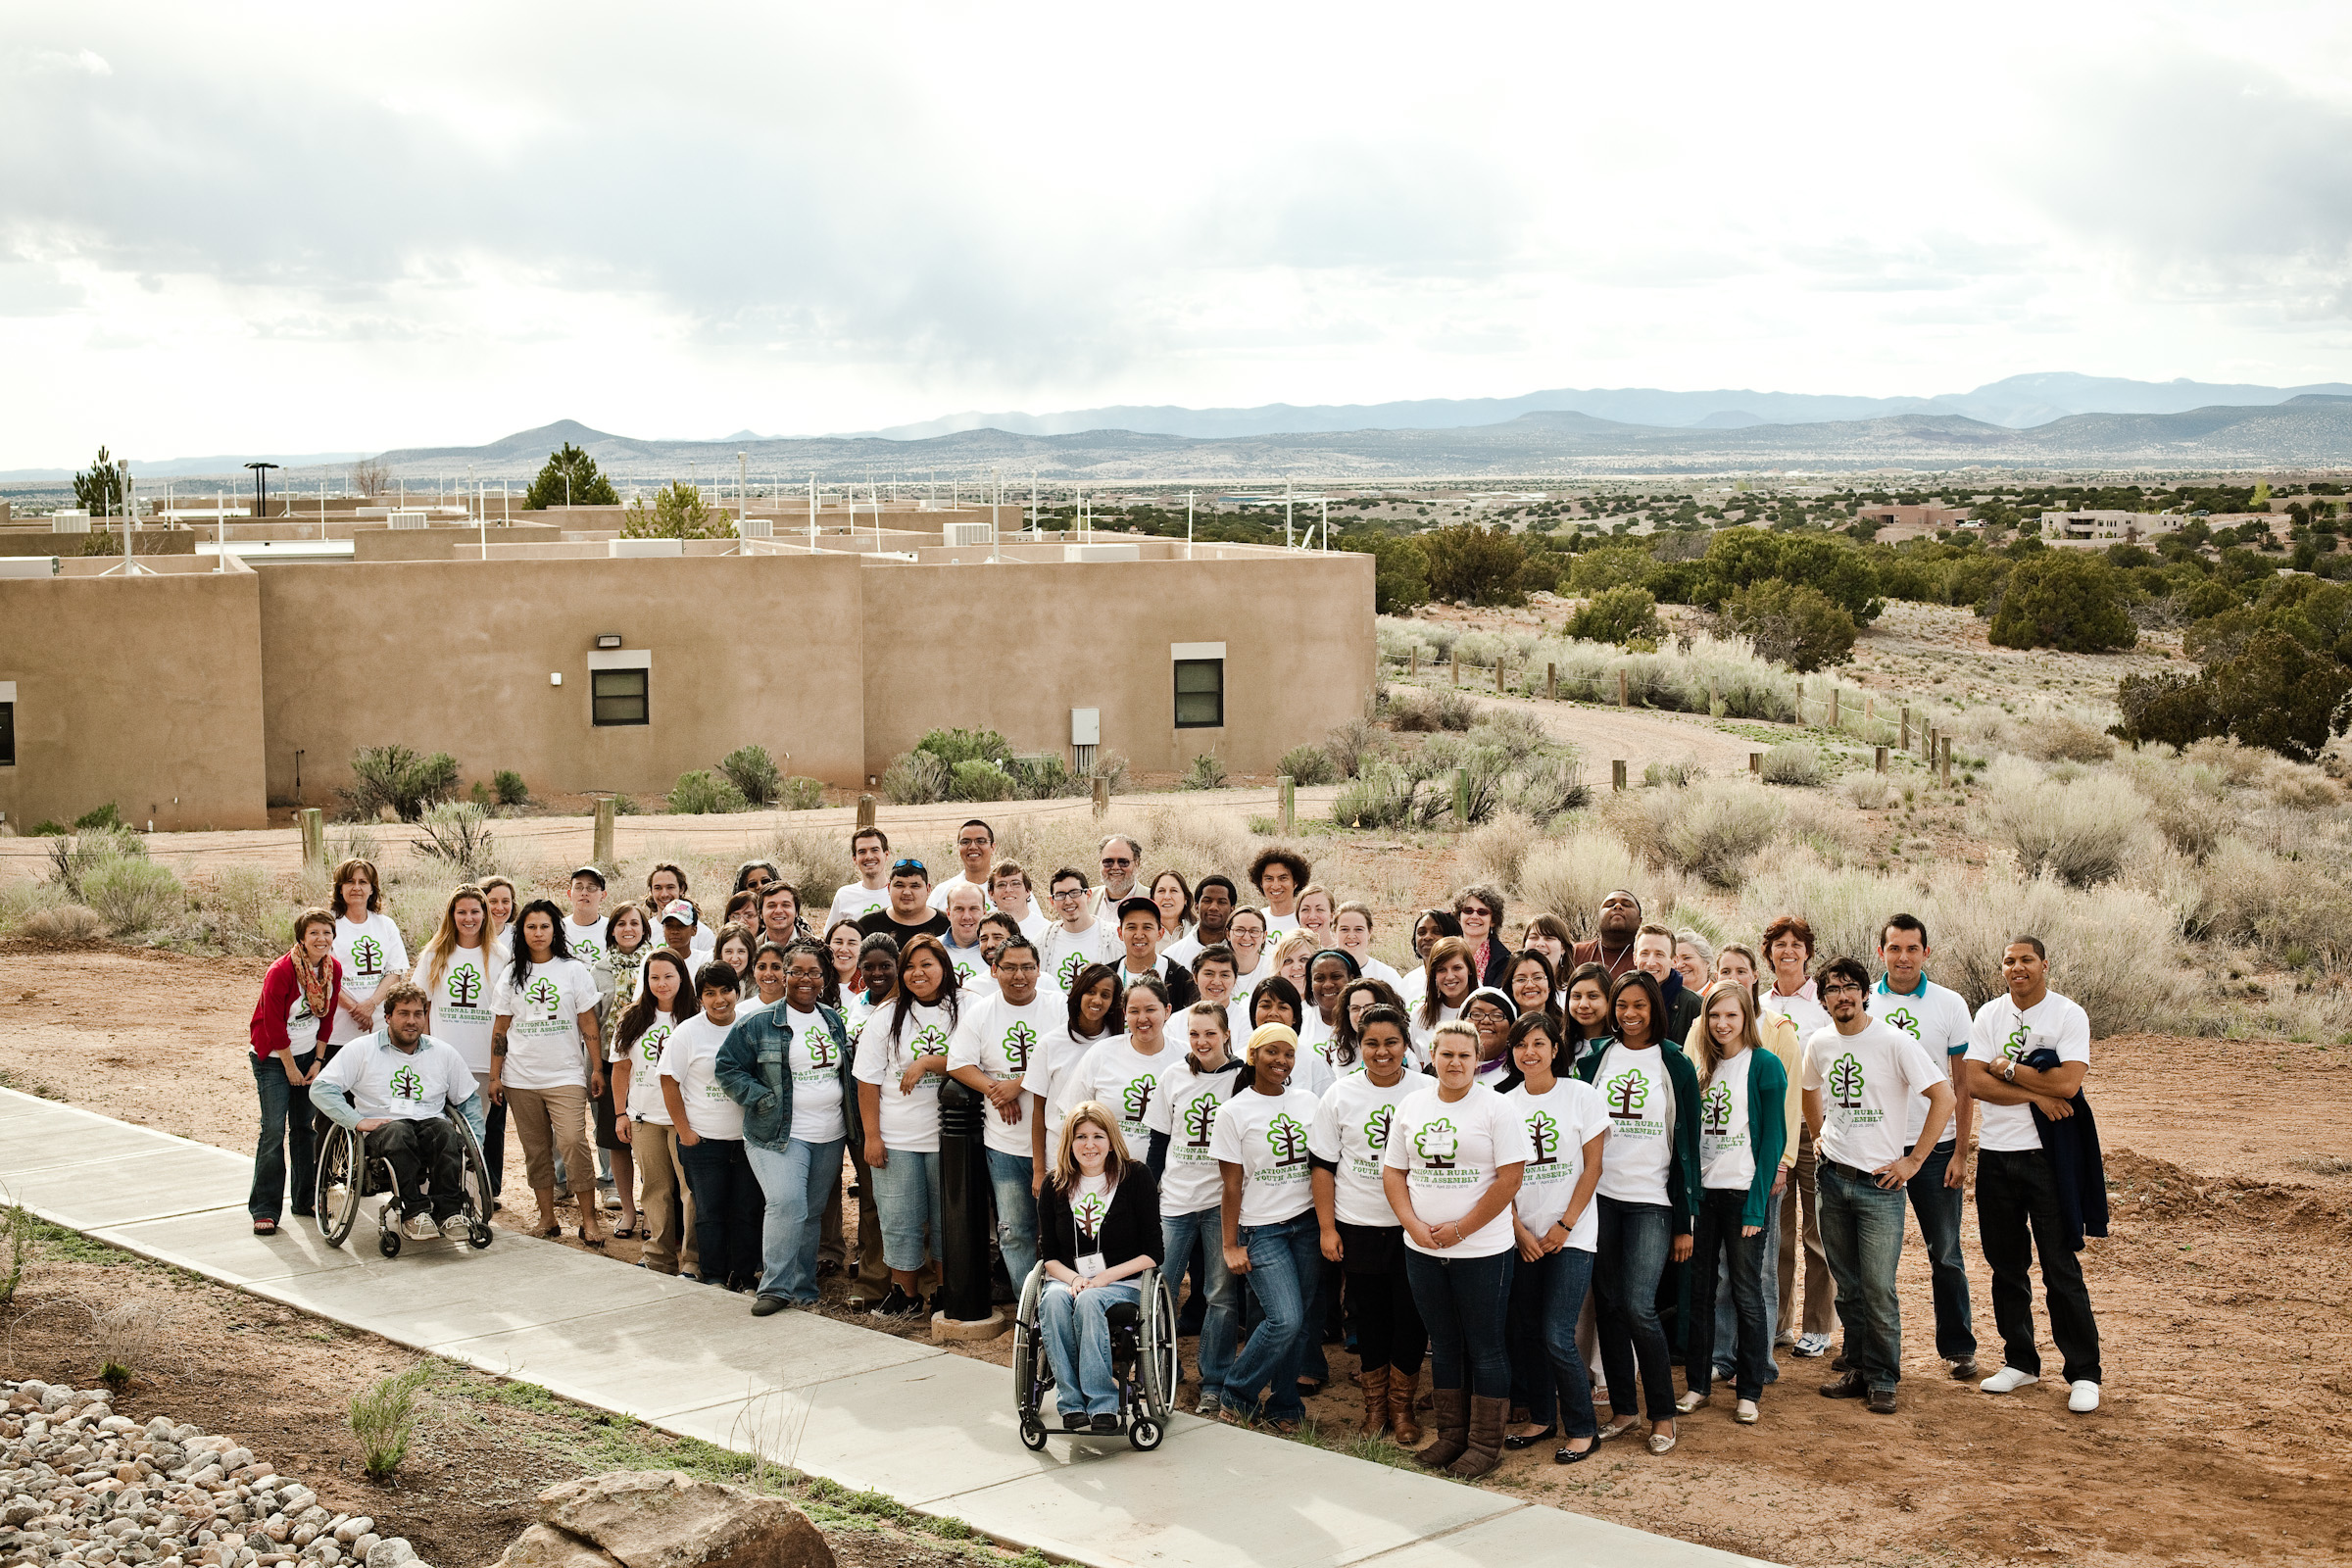 Participants of the 2010 Youth Assembly in Santa Fe, New Mexico gather